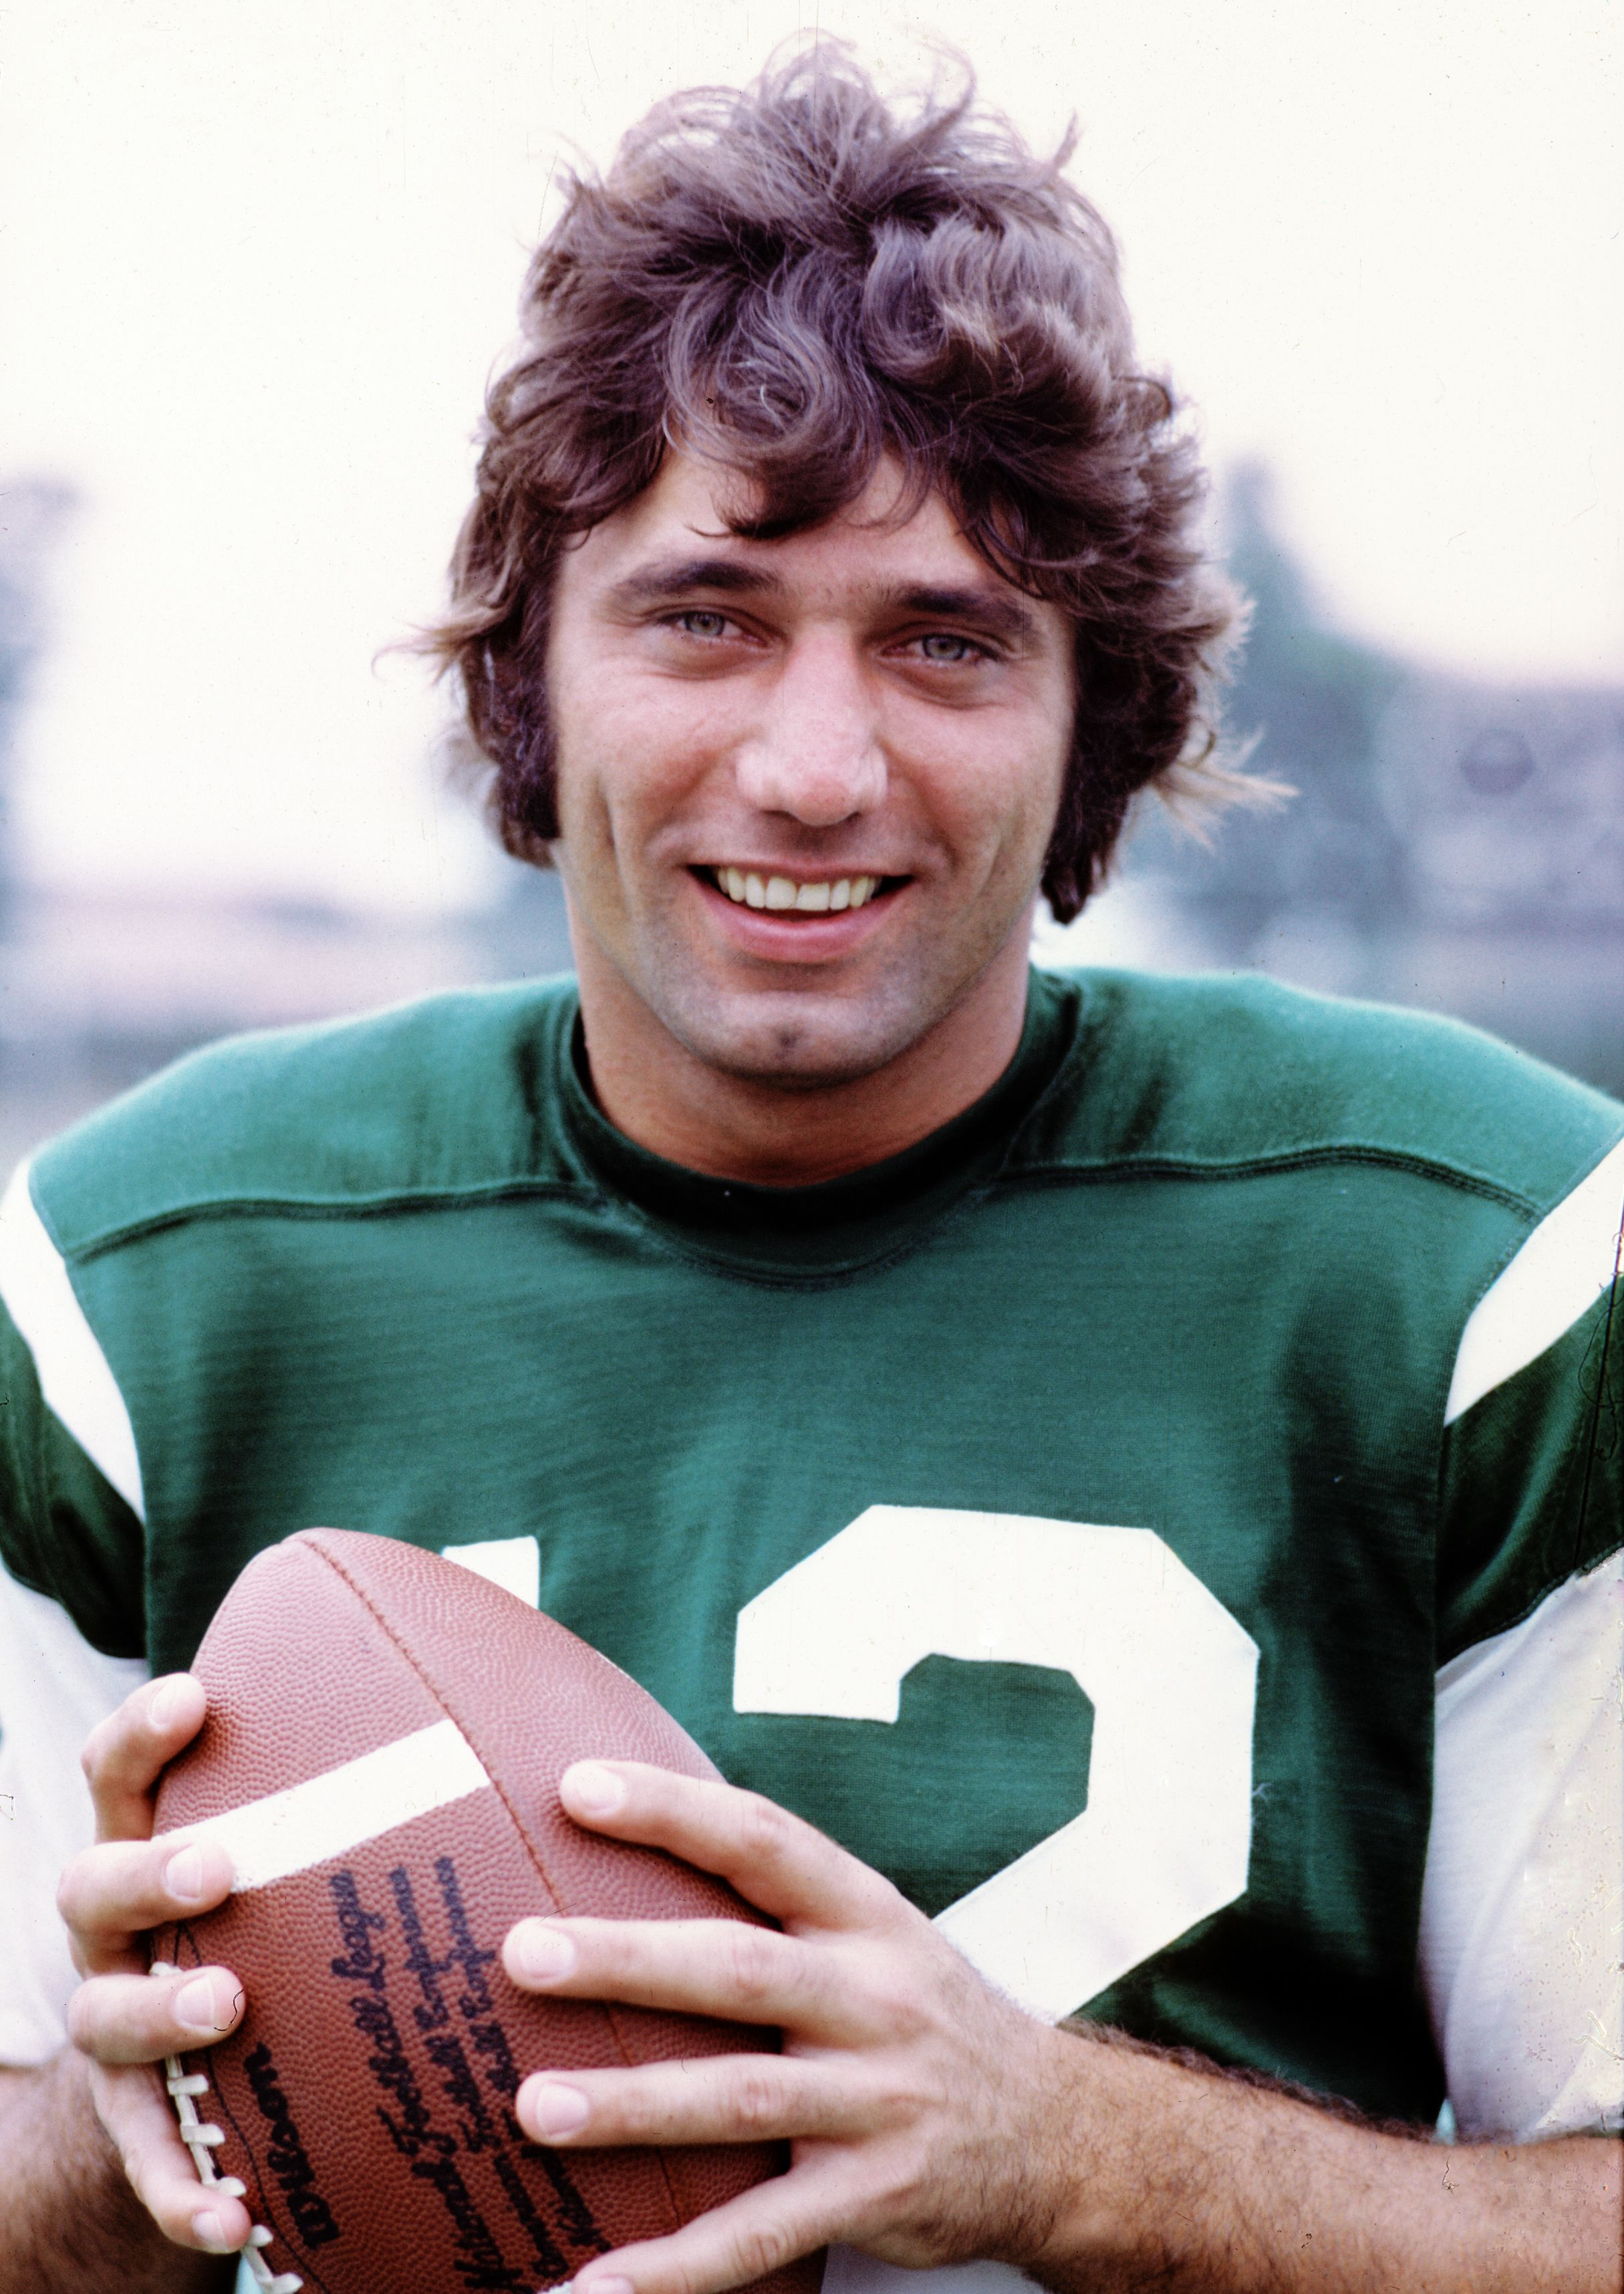 The 78-year old son of father (?) and mother(?) Joe Namath in 2021 photo. Joe Namath earned a  million dollar salary - leaving the net worth at  million in 2021